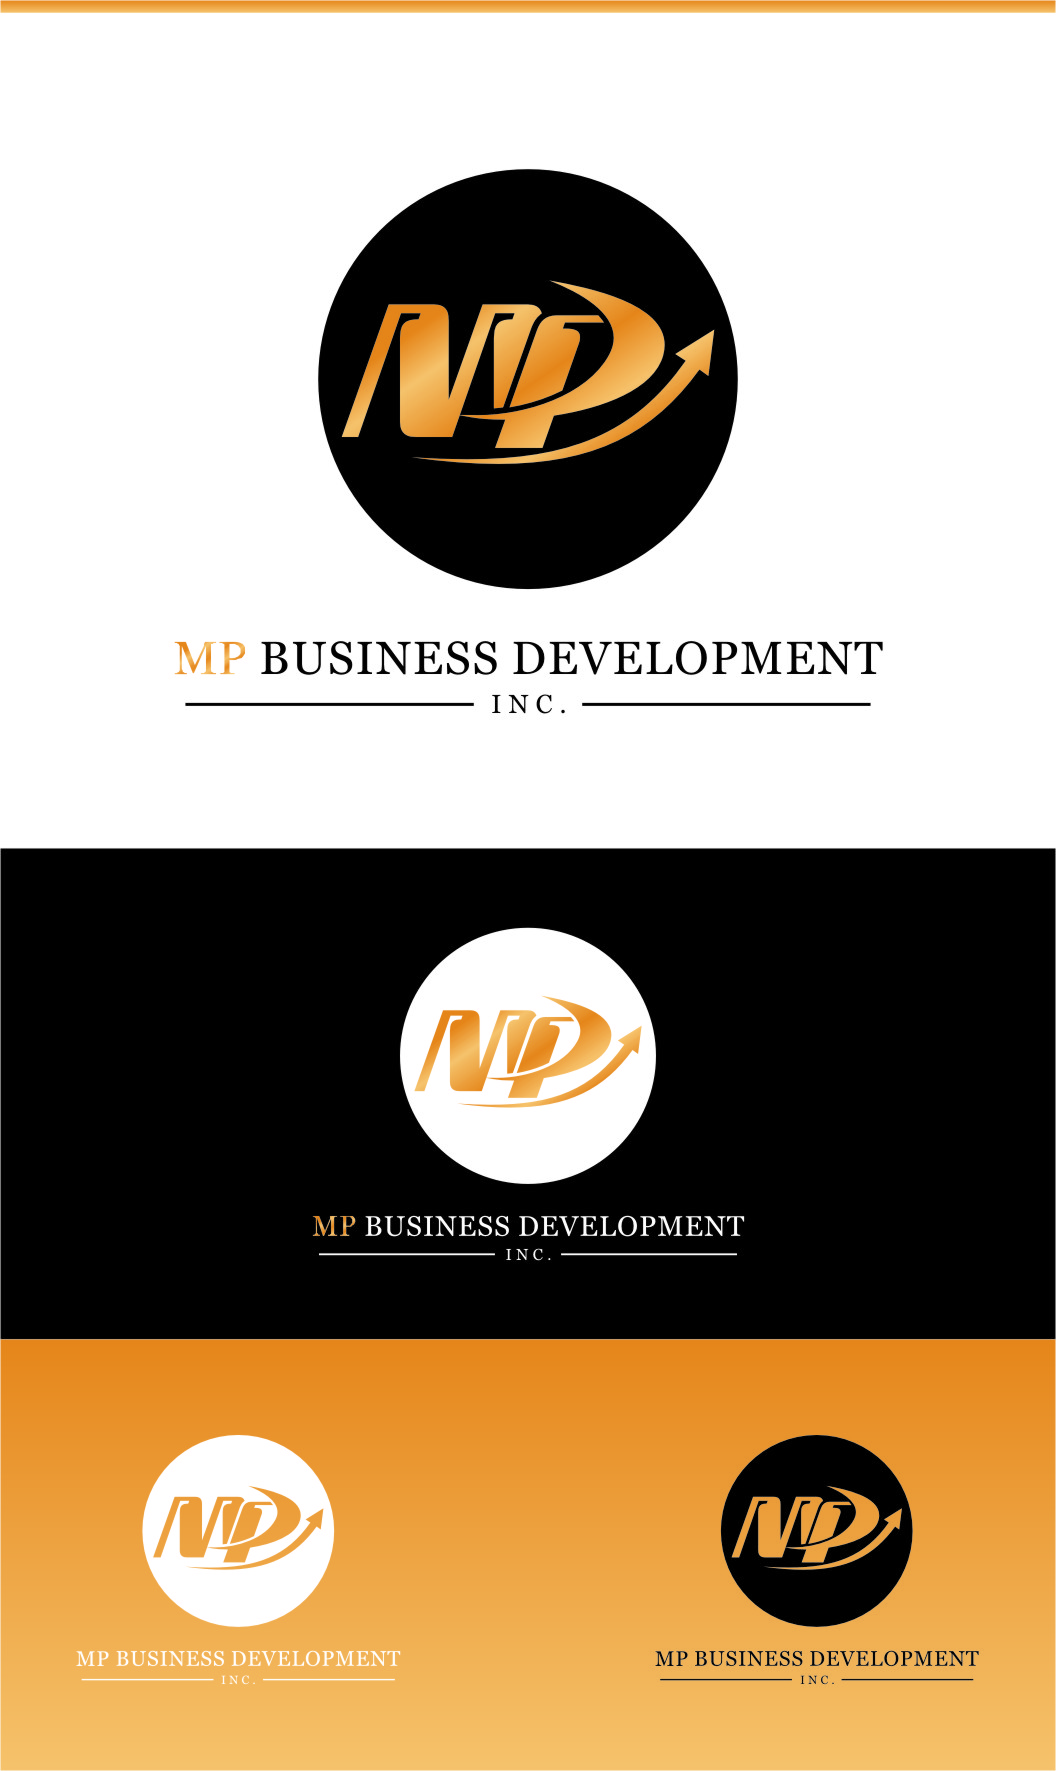 Logo Design by RasYa Muhammad Athaya - Entry No. 188 in the Logo Design Contest MP Business Development Inc. Logo Design.